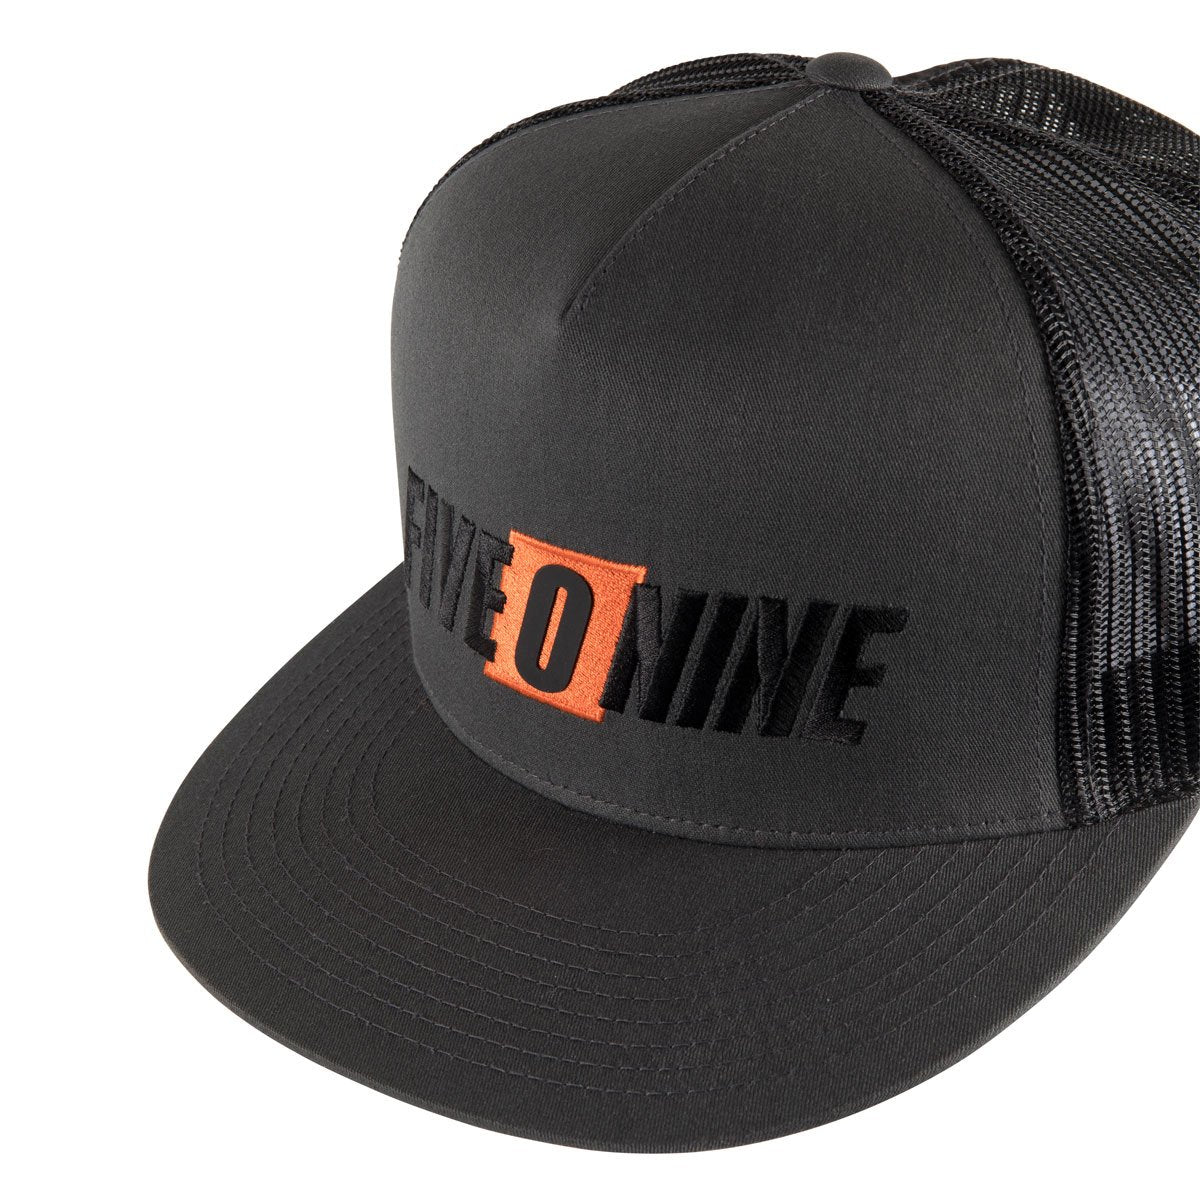 Five O Nine Flat Billed Trucker Hat